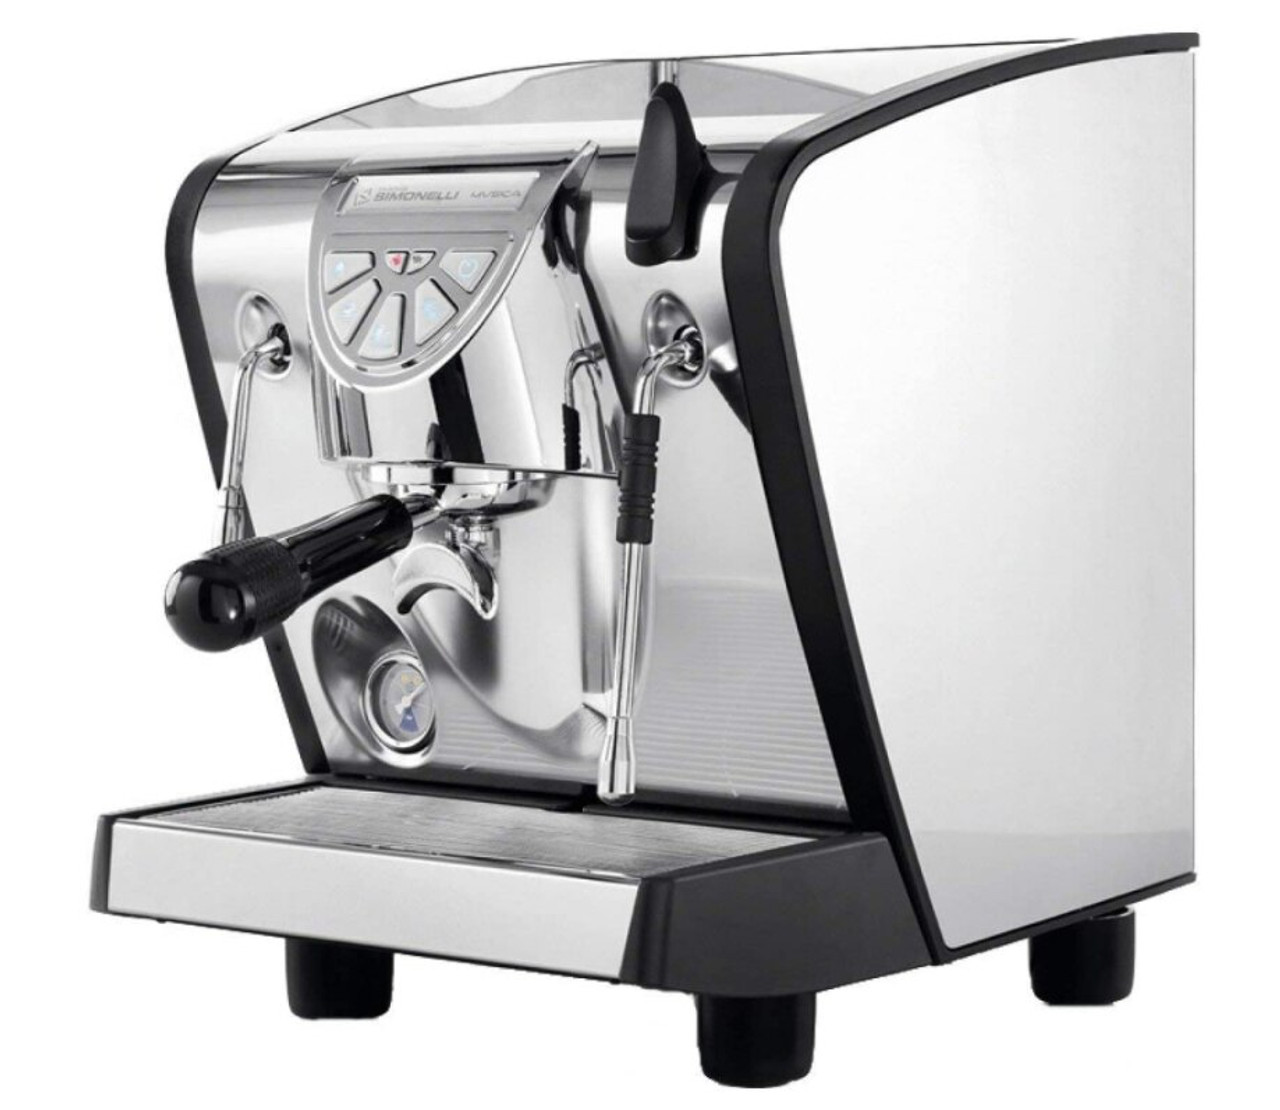 Nuova Simonelli Pour Over Espresso Machine Black